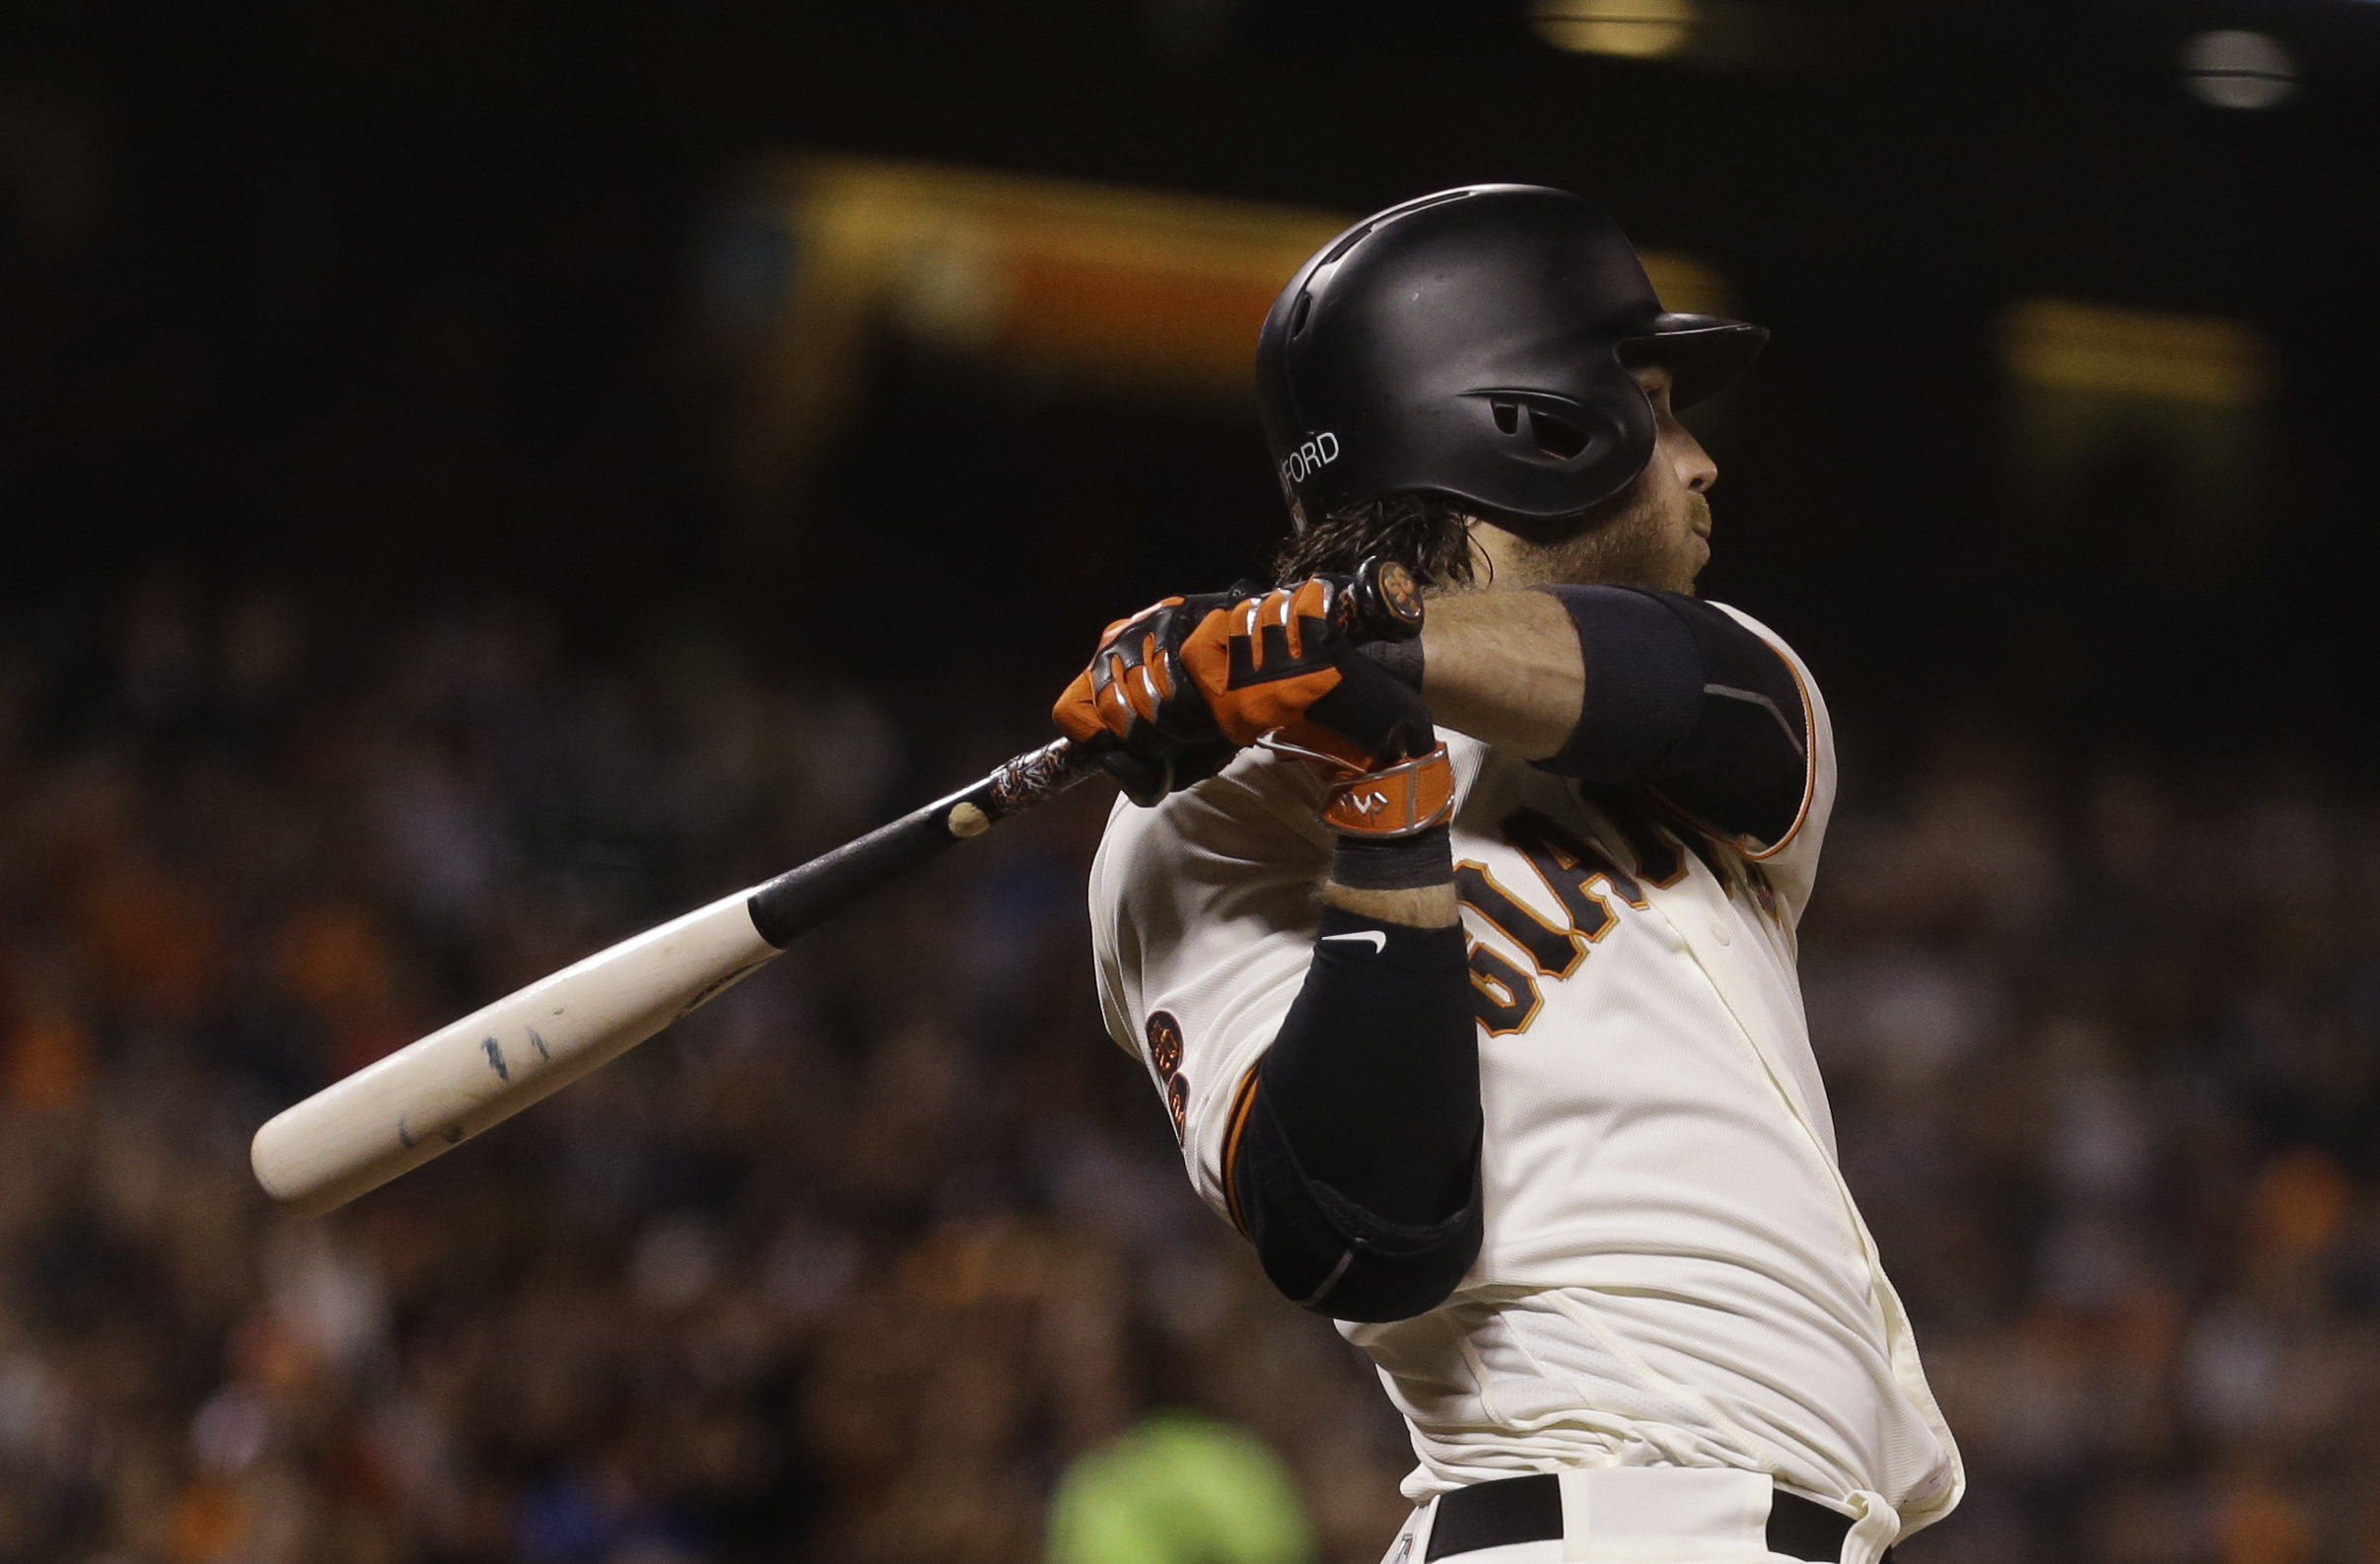 San Francisco Giants' Brandon Crawford swings for an RBI sacrifice fly off Colorado Rockies' Gonzalez Germen in the eighth inning of a baseball game Wednesday, July 6, 2016, in San Francisco. (AP Photo/Ben Margot)